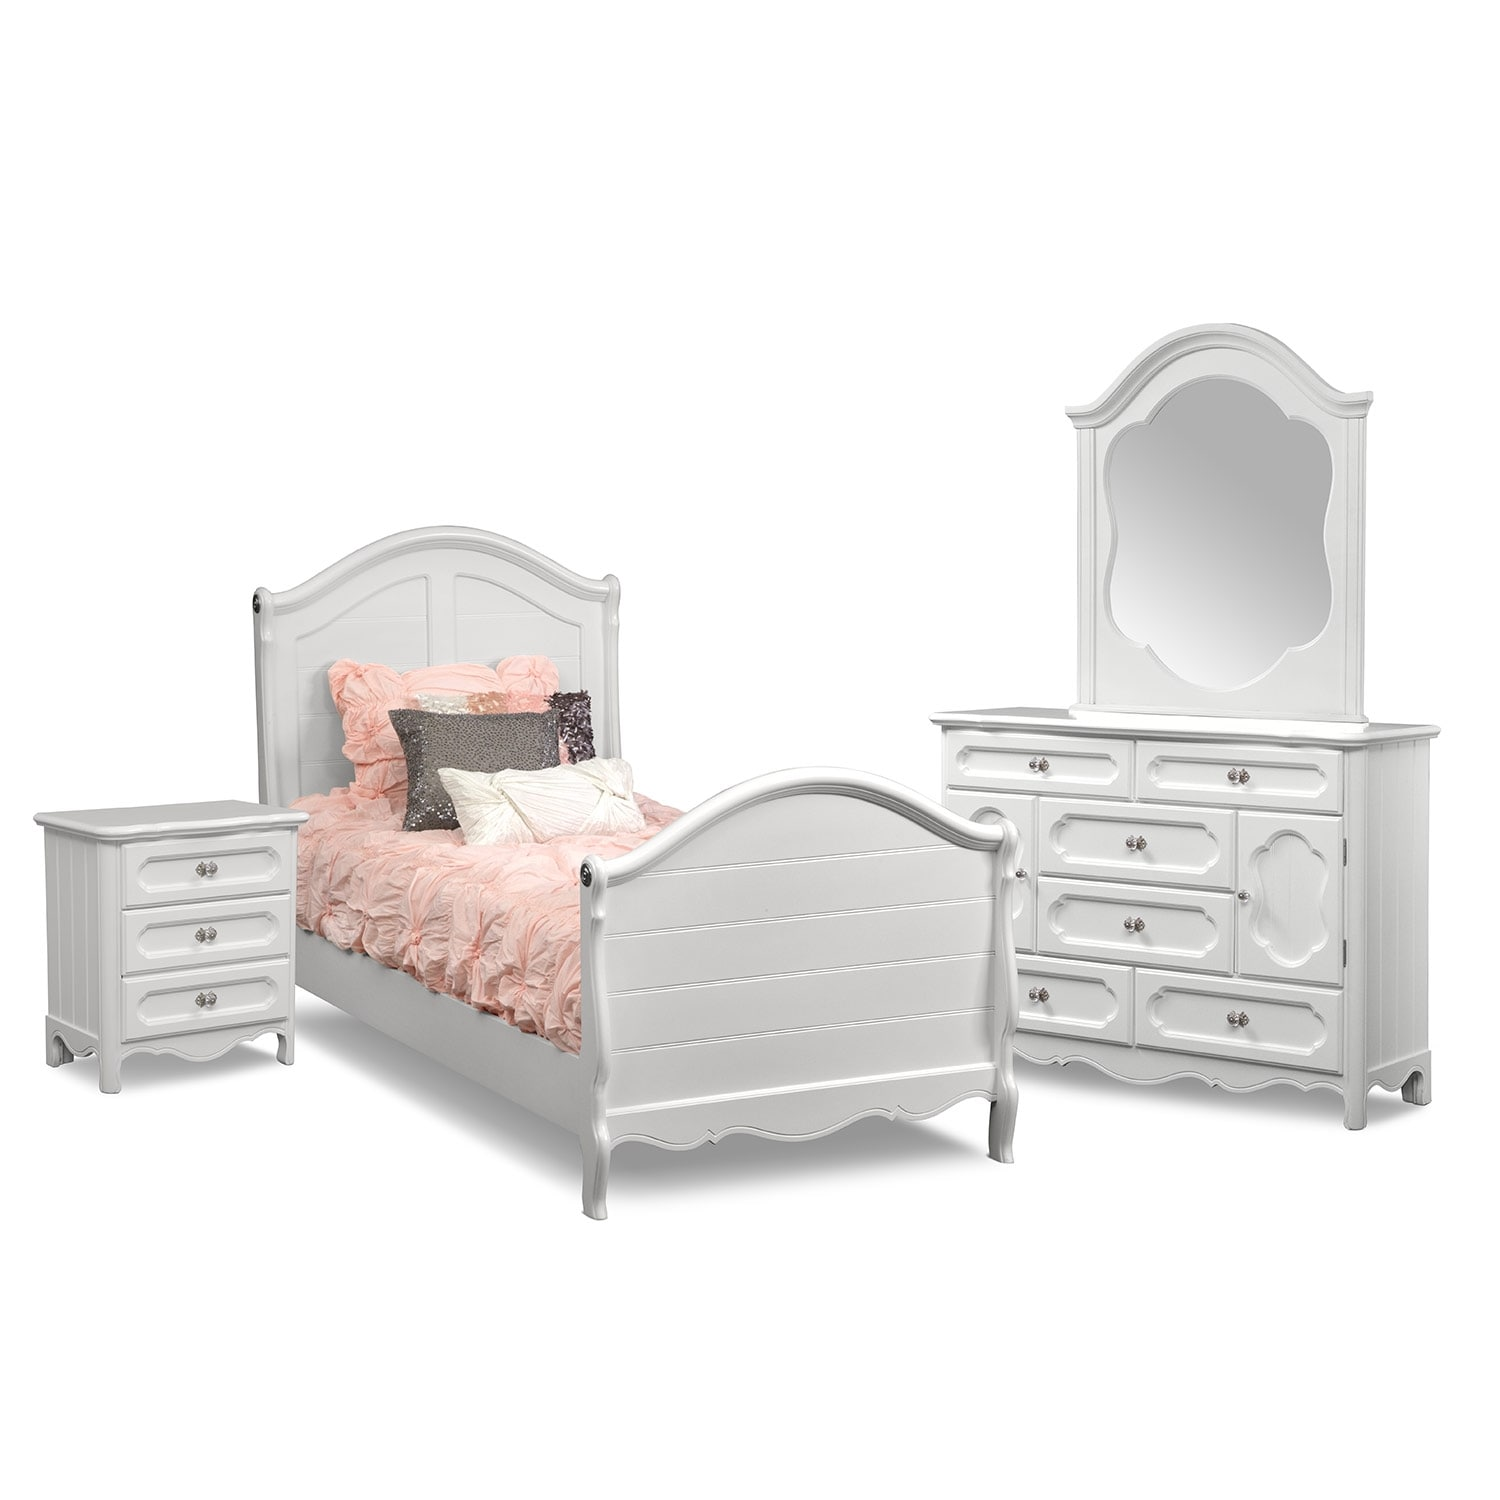 Kids Furniture - Carly 6-Piece Bedroom Set with Nightstand, Dresser and Mirror